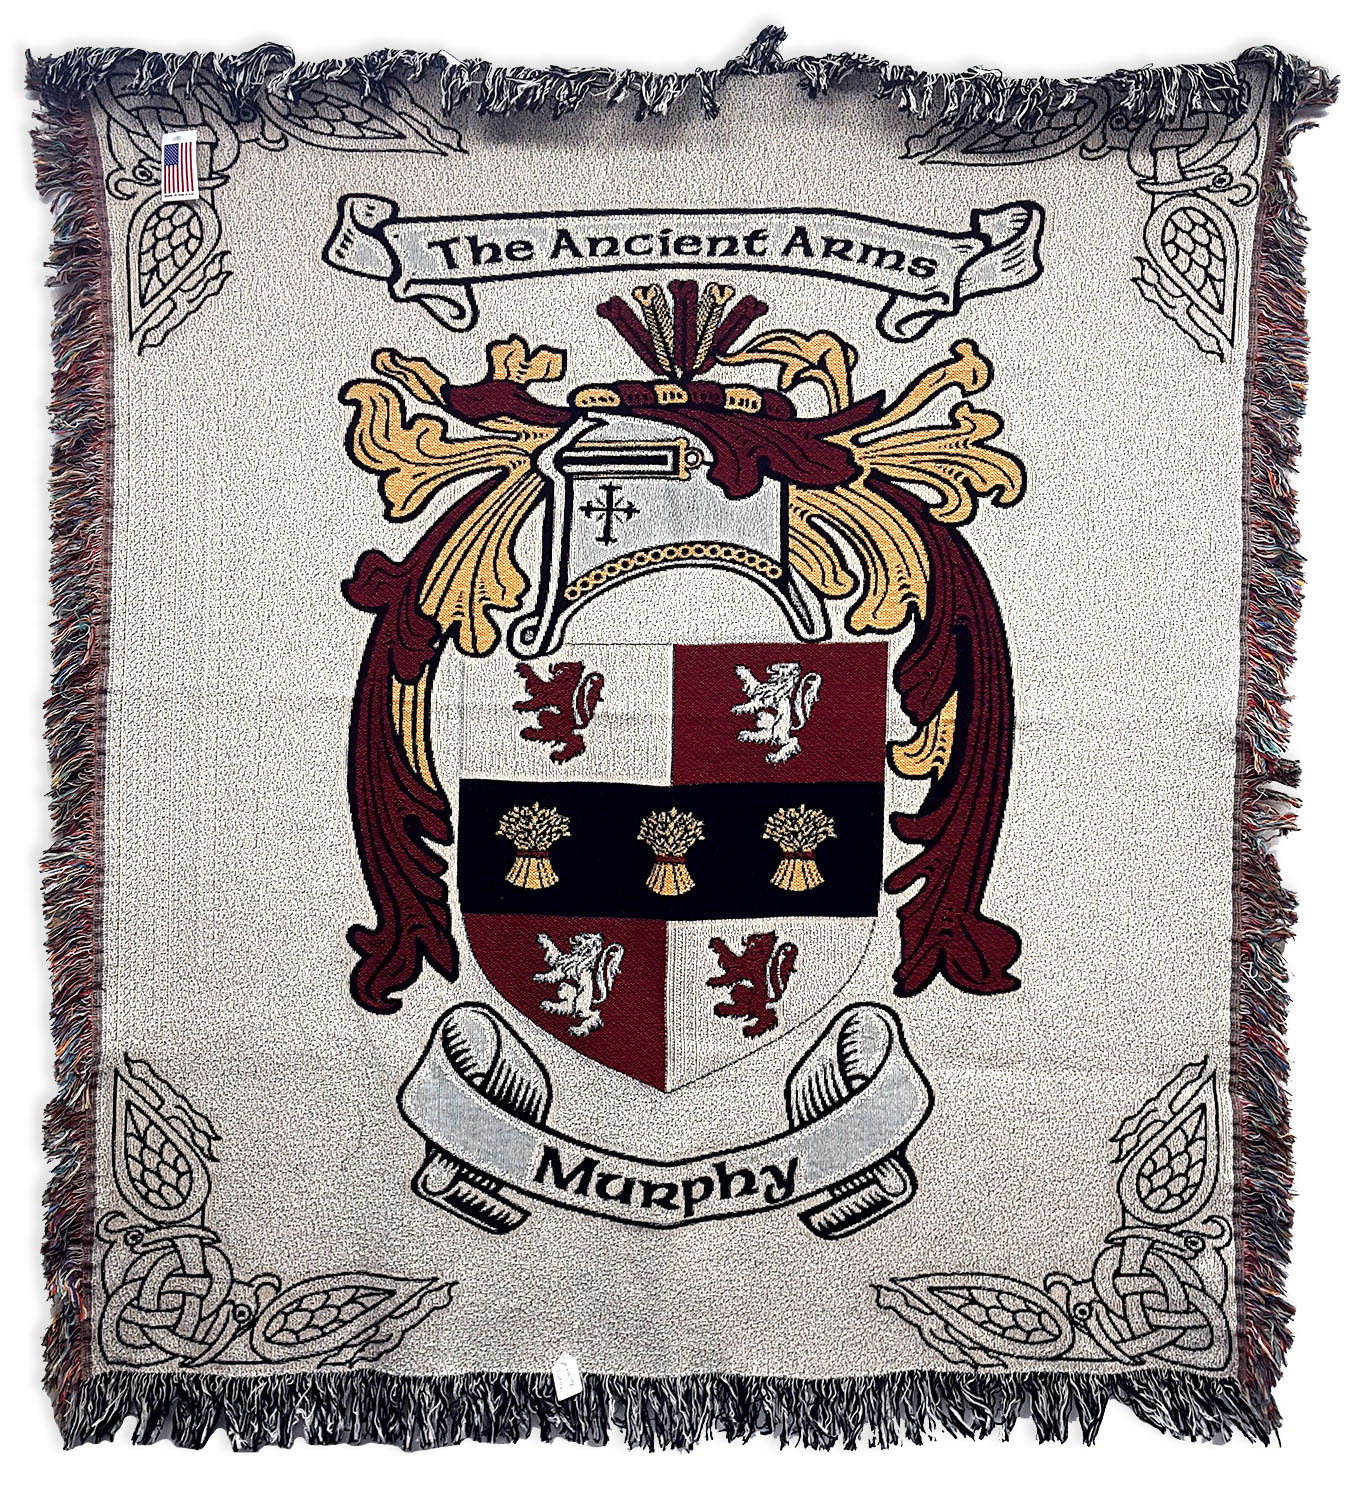 COAB-CL-1802 Murphy Coat of Arms Blanket